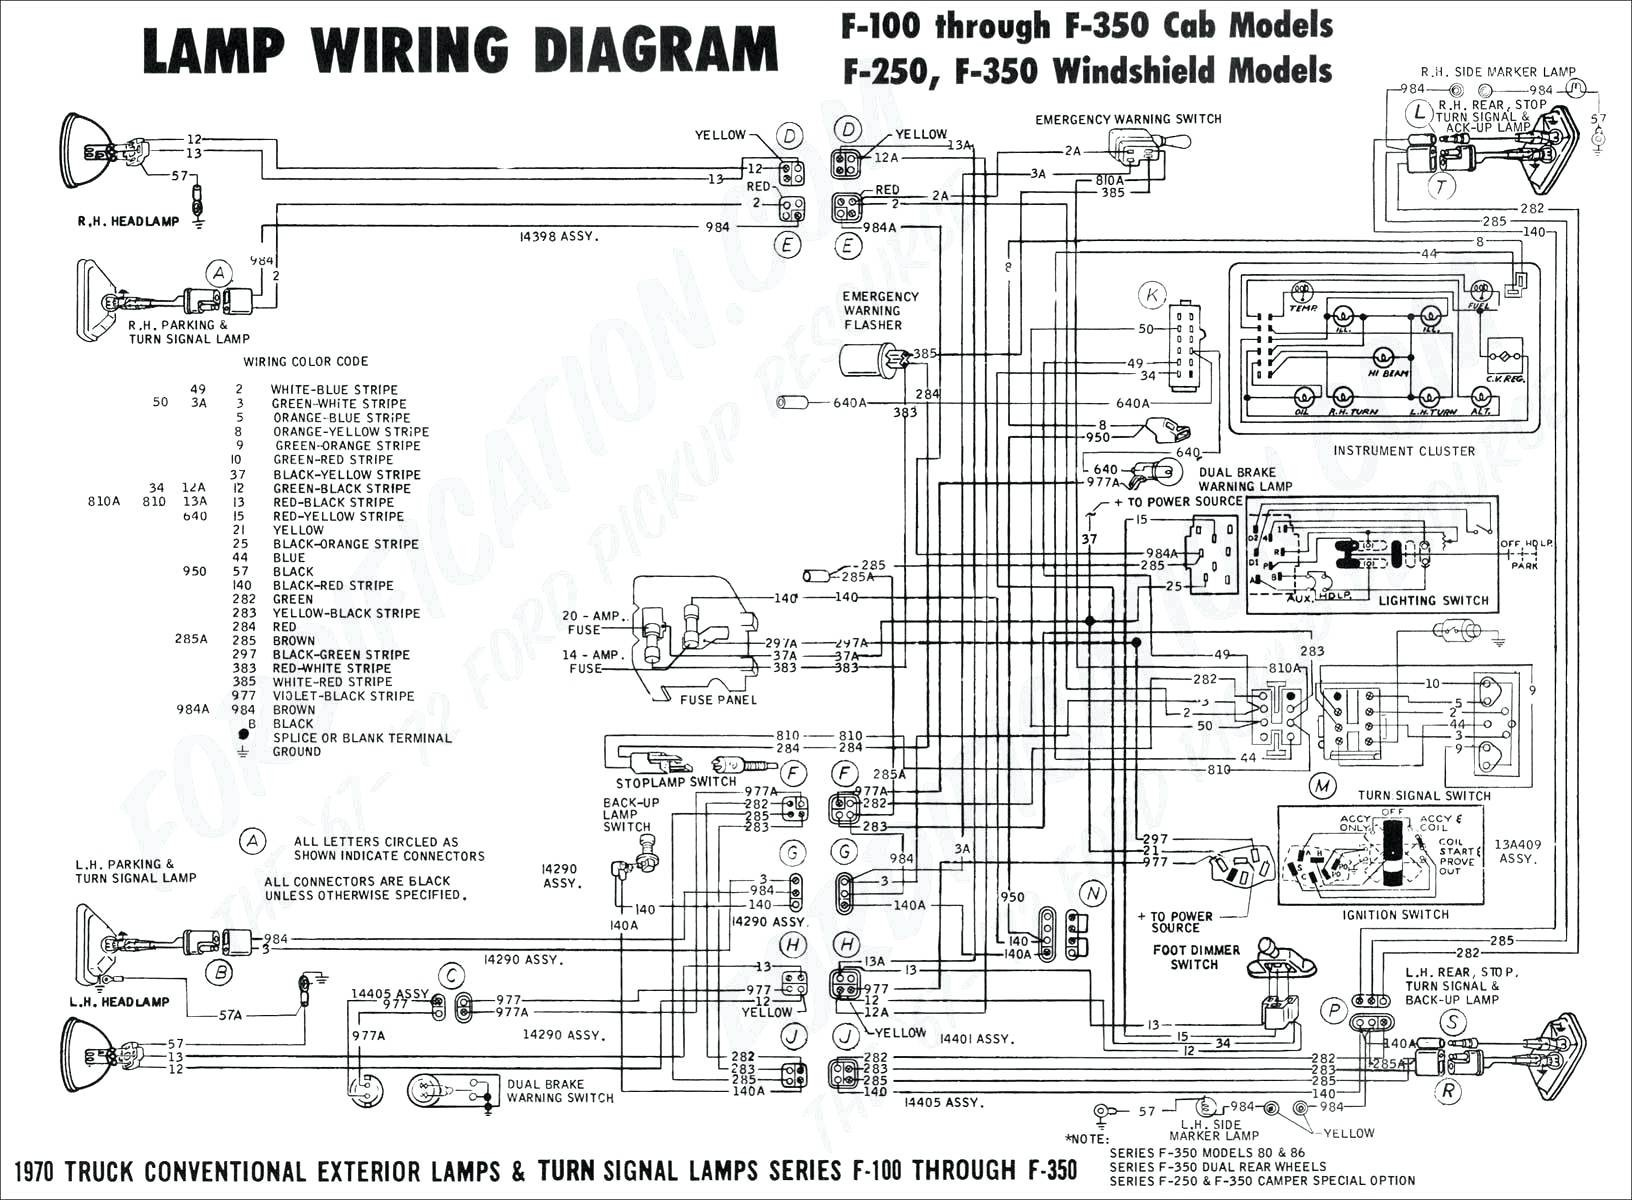 1995 Jeep Wrangler Engine Diagram 94 Jeep Radio Wiring Diagram Another Blog About Wiring Diagram • Of 1995 Jeep Wrangler Engine Diagram 2011 Jeep Grand Cherokee Wiring Diagram Download